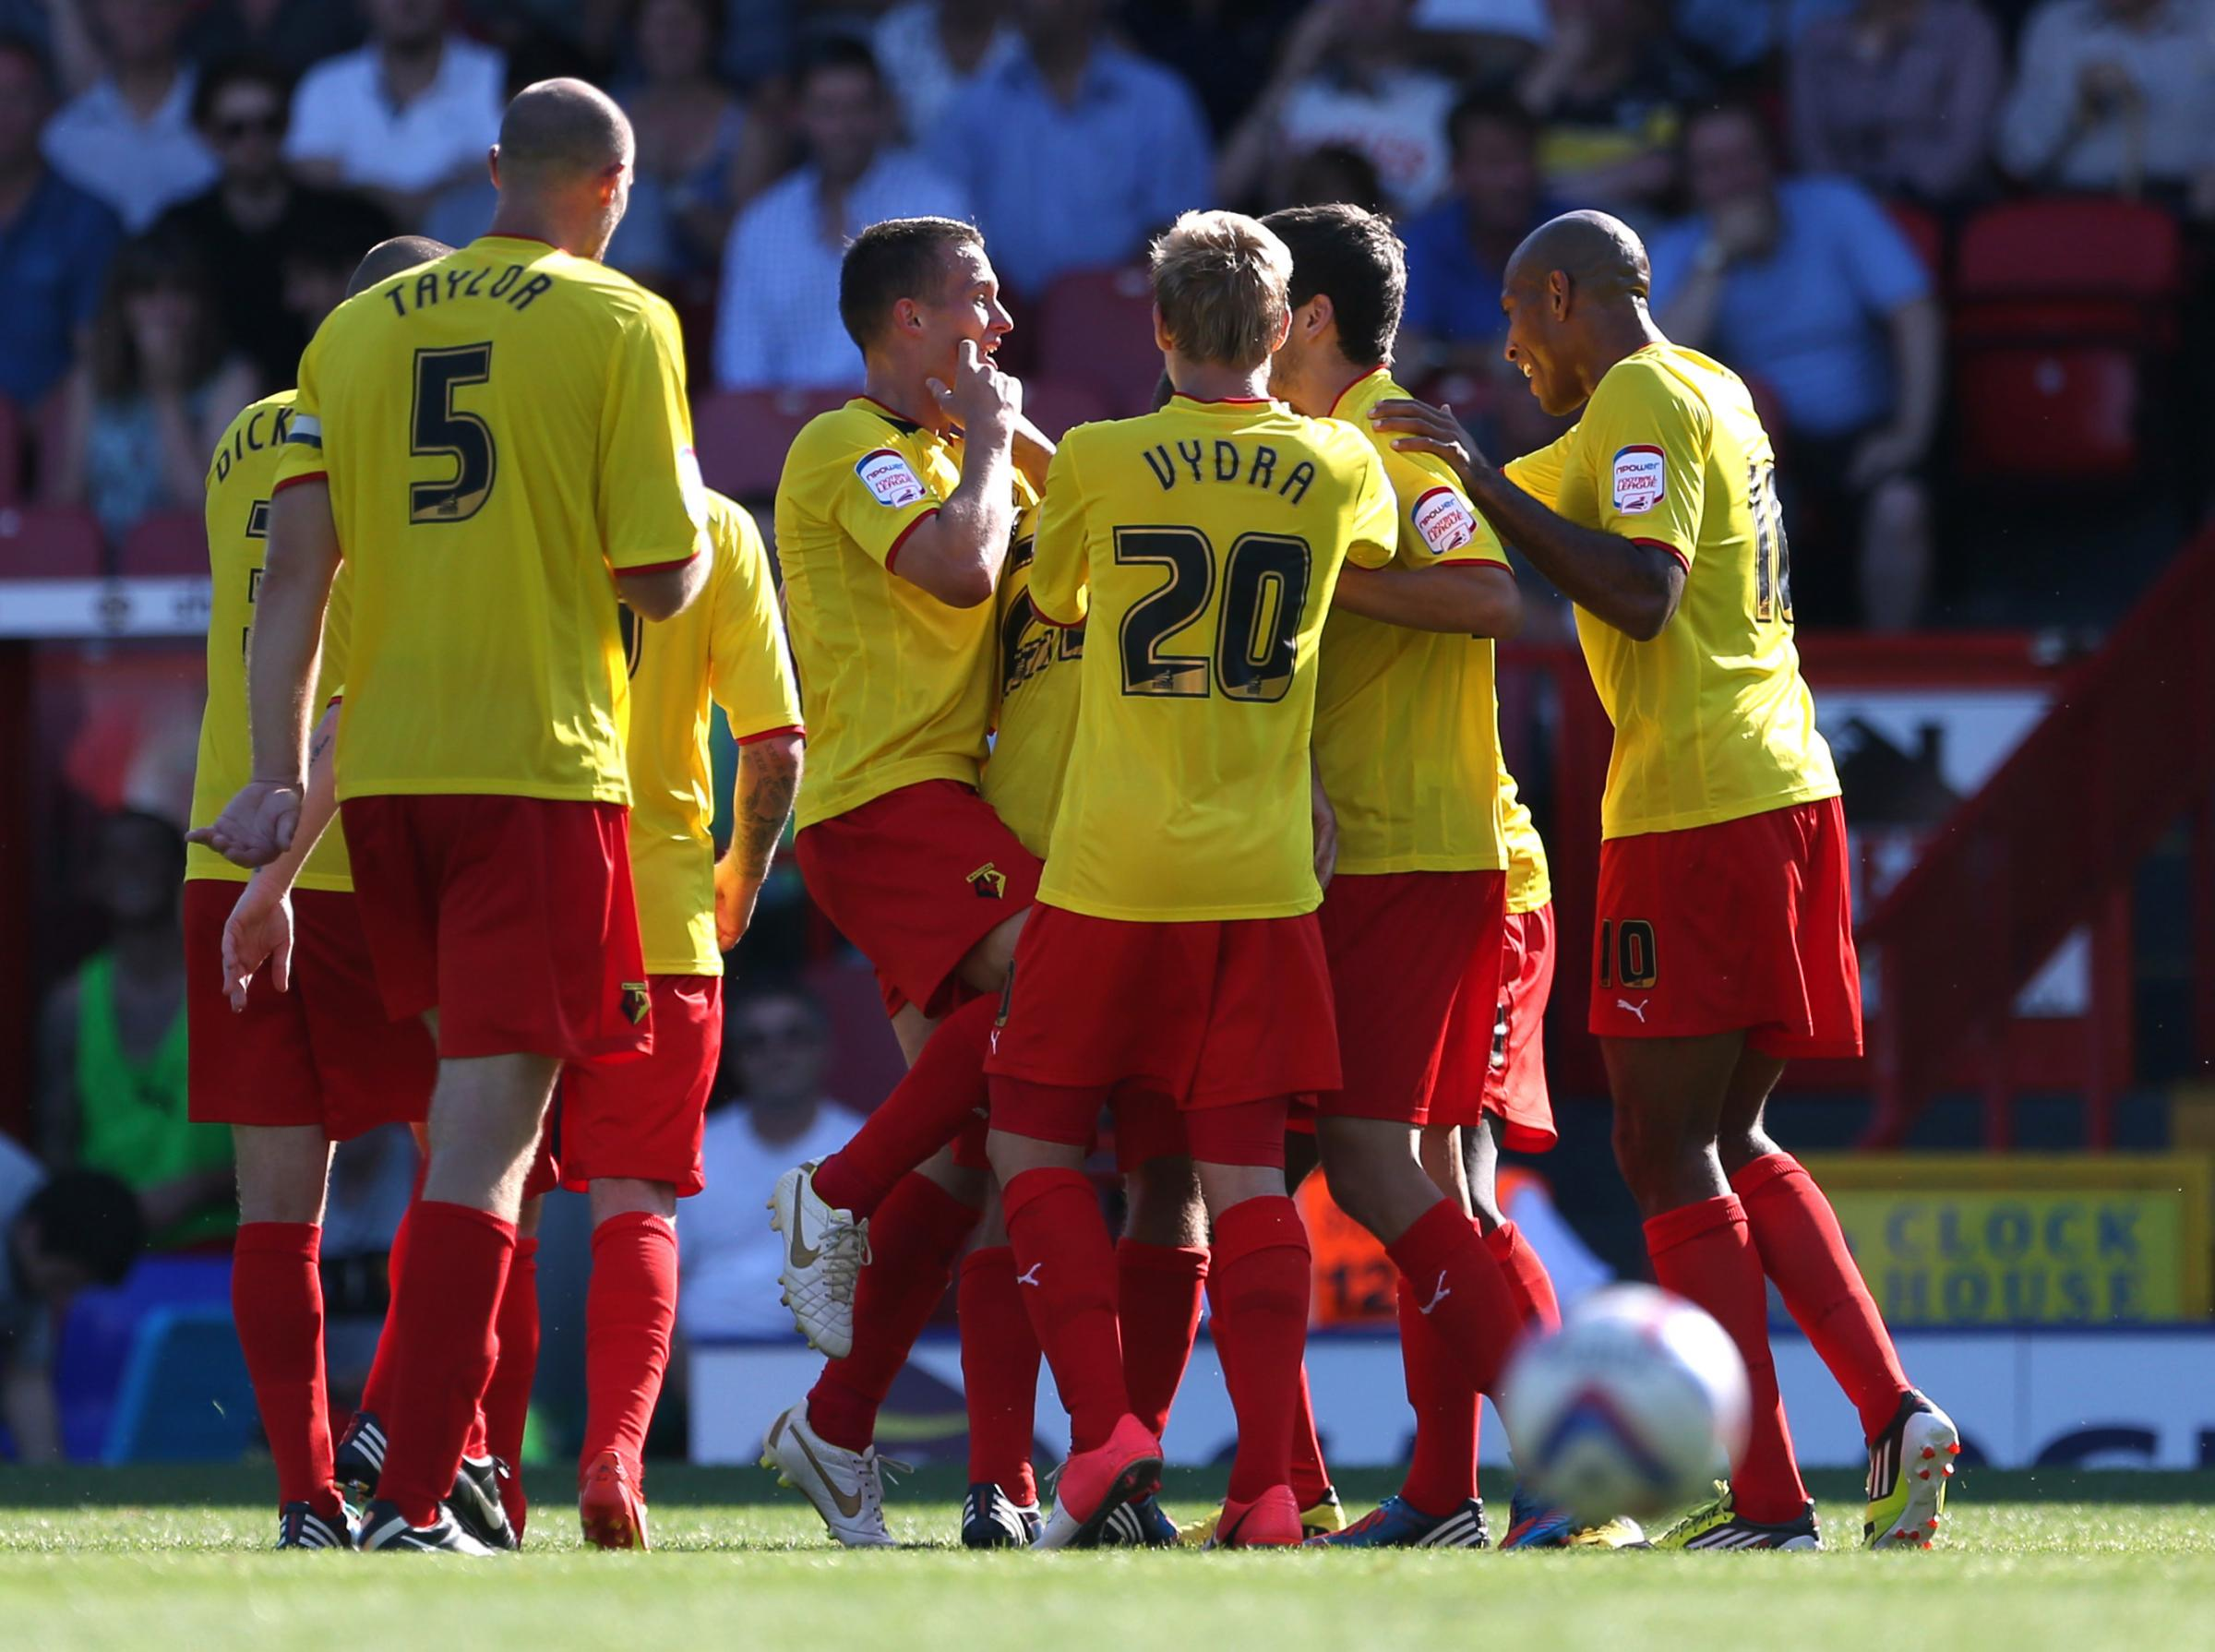 Almen Abdi celebrates scoring Watford's second goal in their opening-day victory at Crystal Palace in August 2012. Picture: Action Images